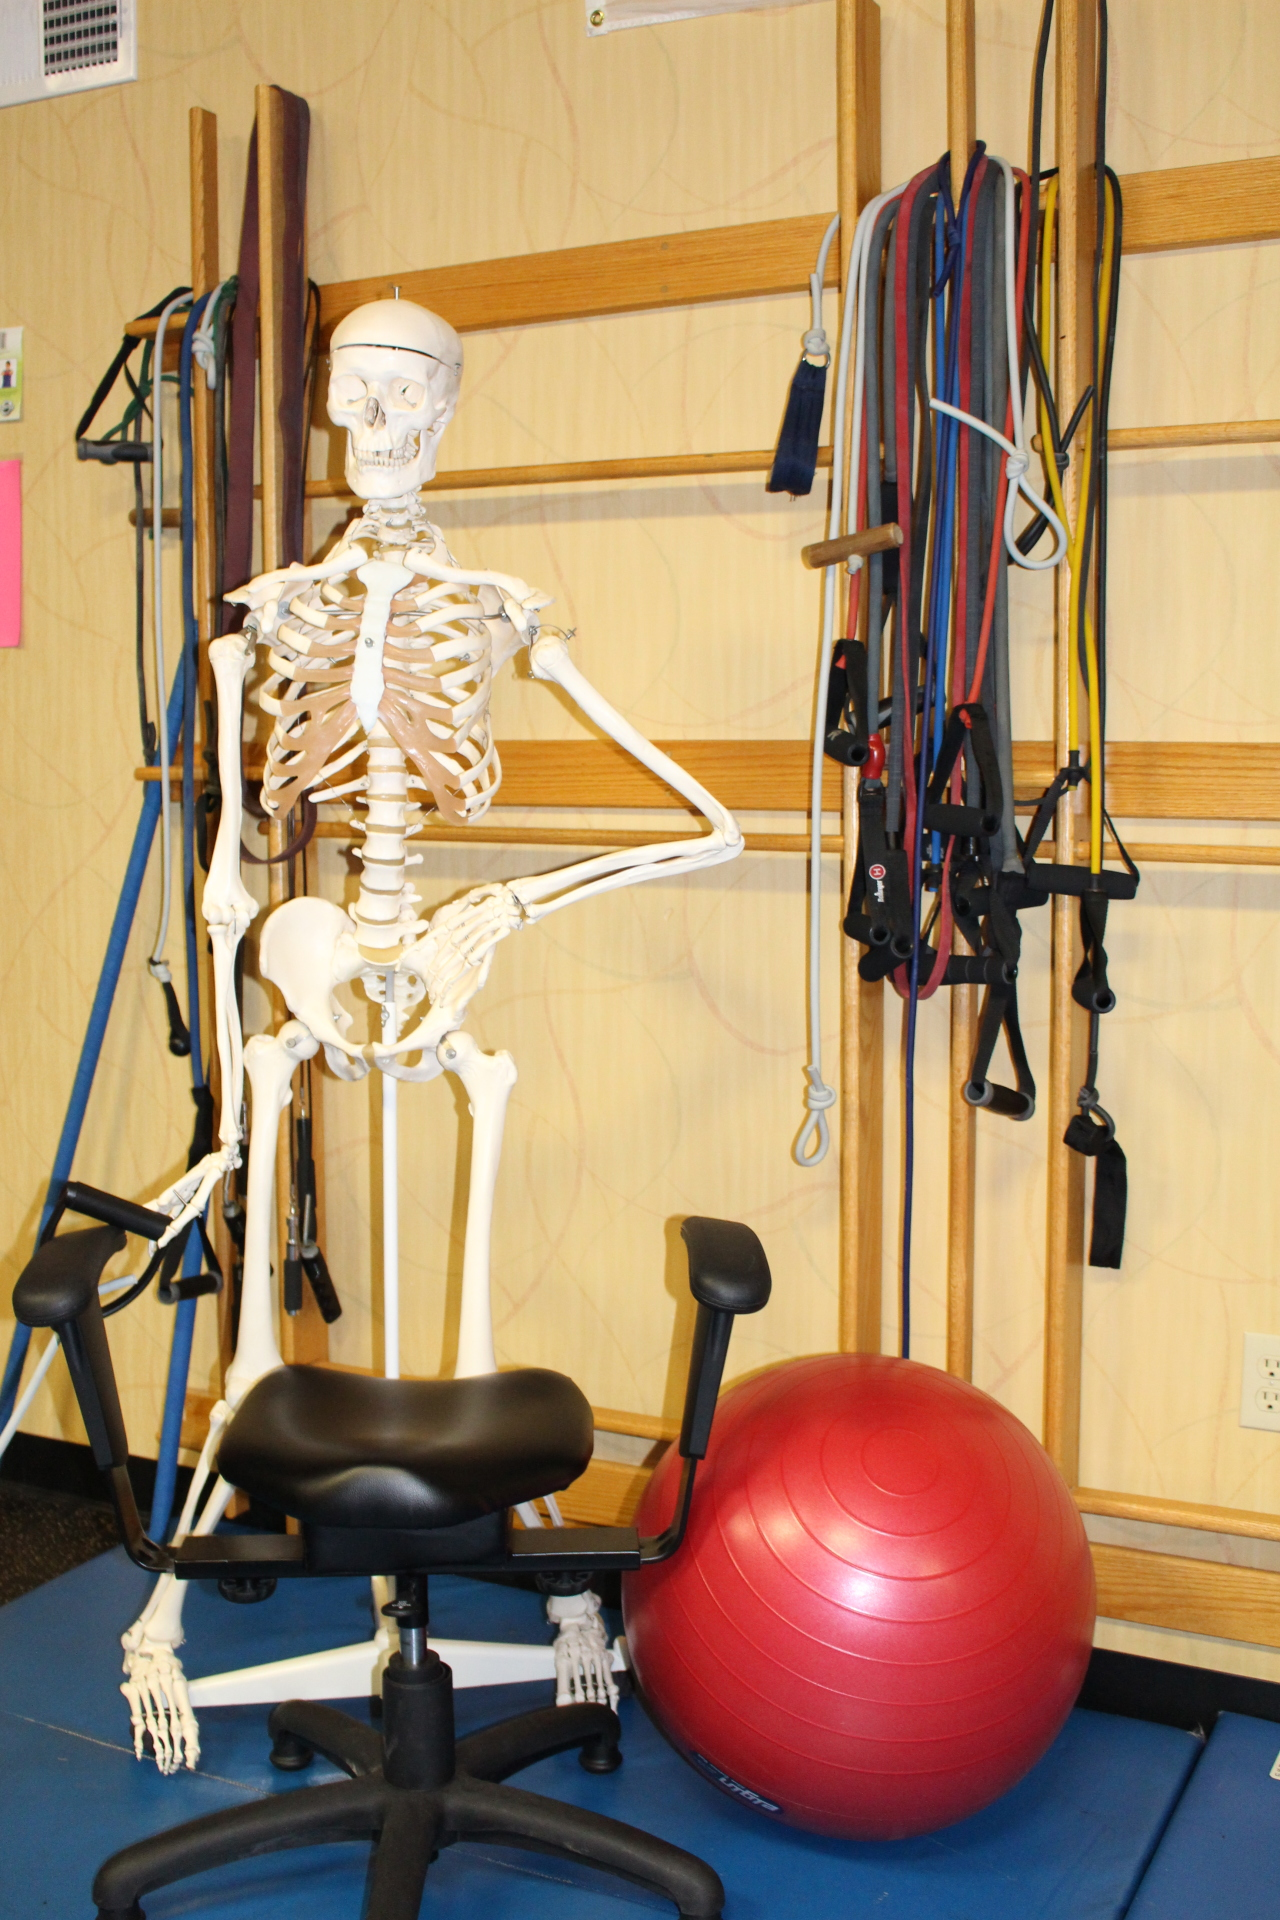 Uniontown Chiropractic Finess Center